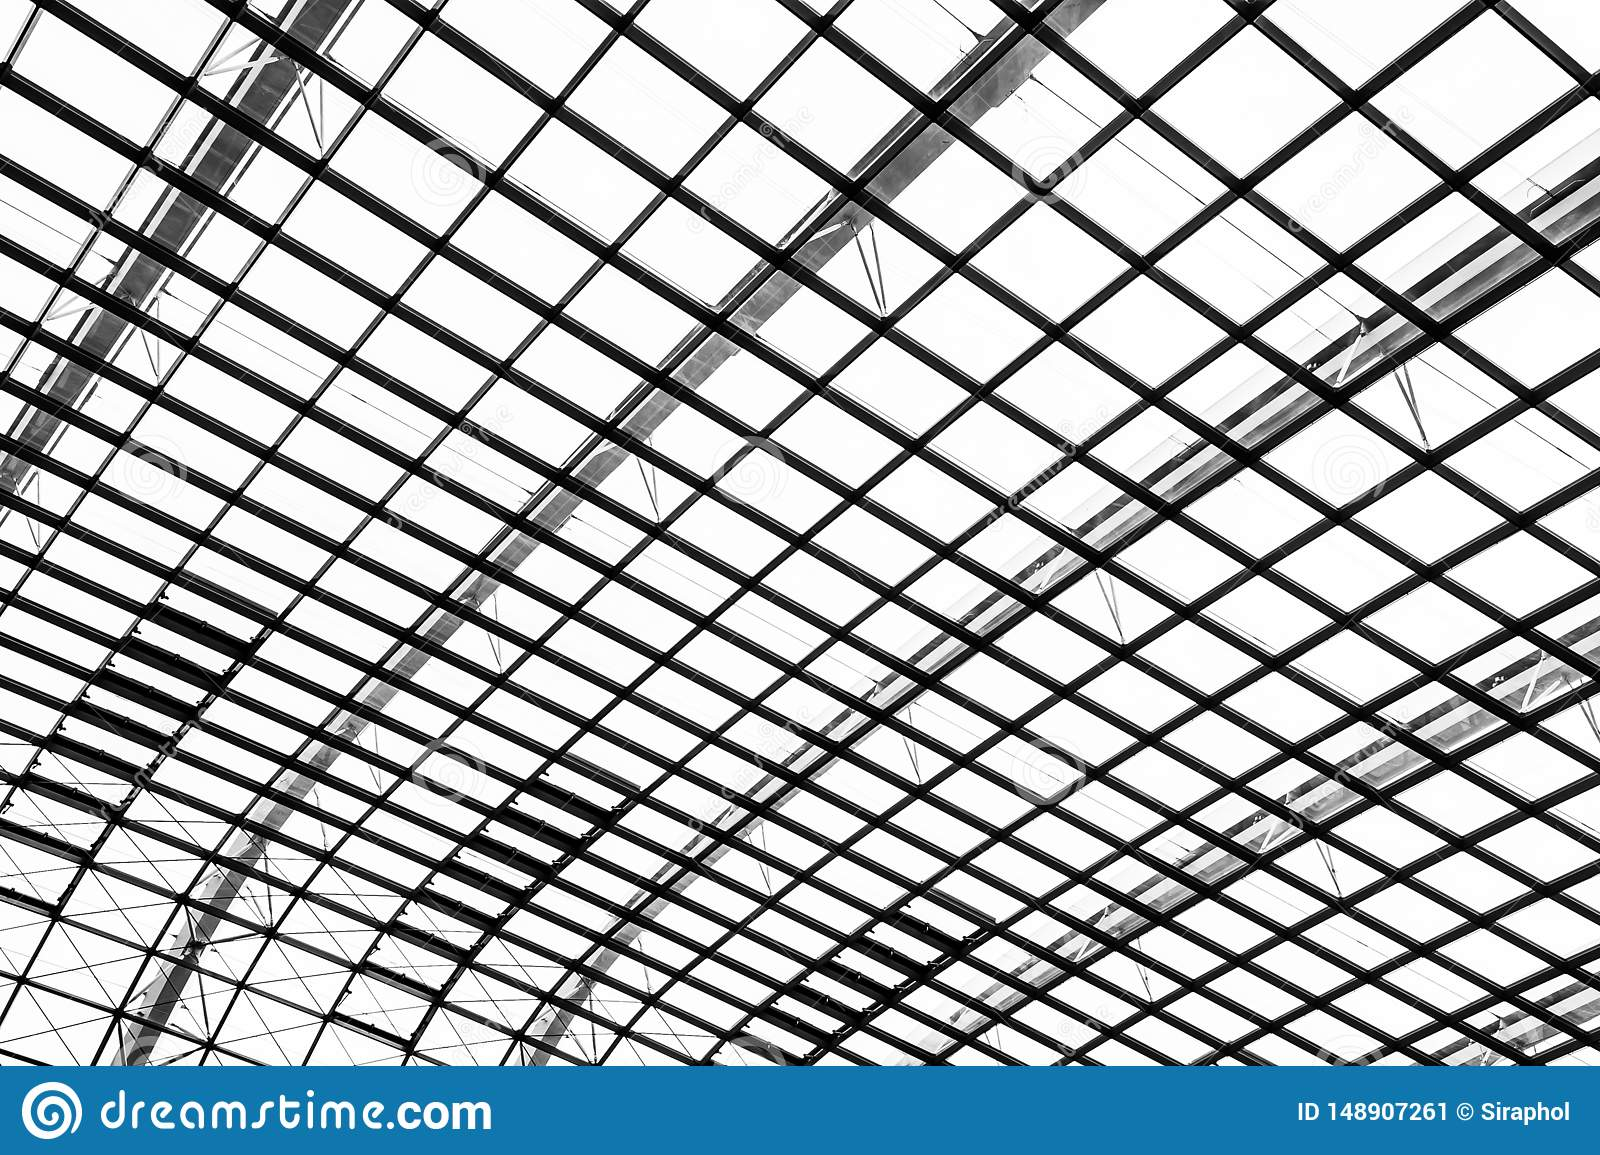 Abstract Glass Window Roof Architecture Exterior Stock Image Image Of Roof Design 148907261